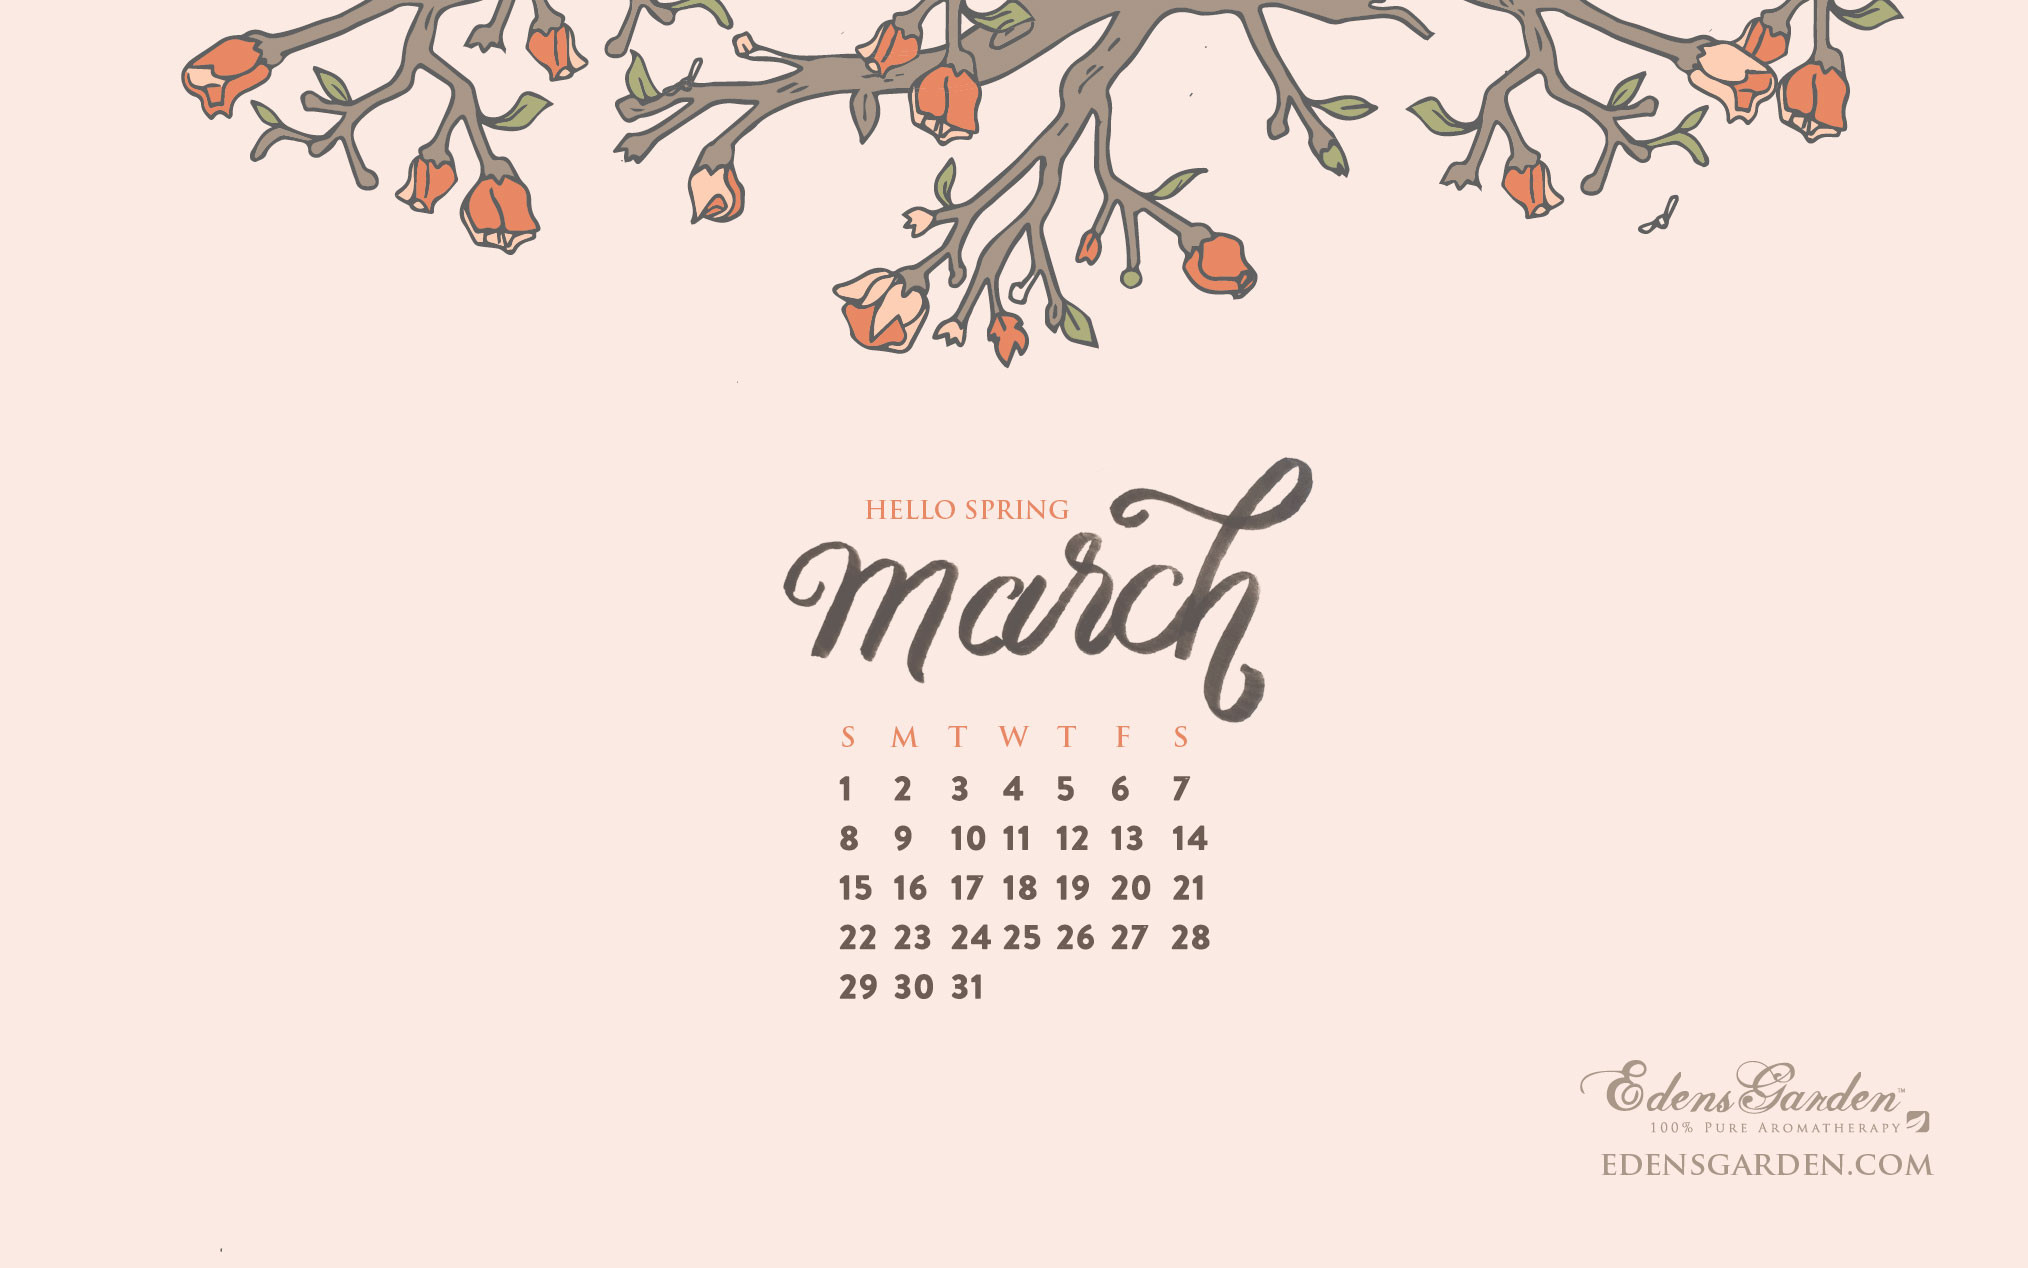 March calendar wallpaper   SF Wallpaper 2028x1268